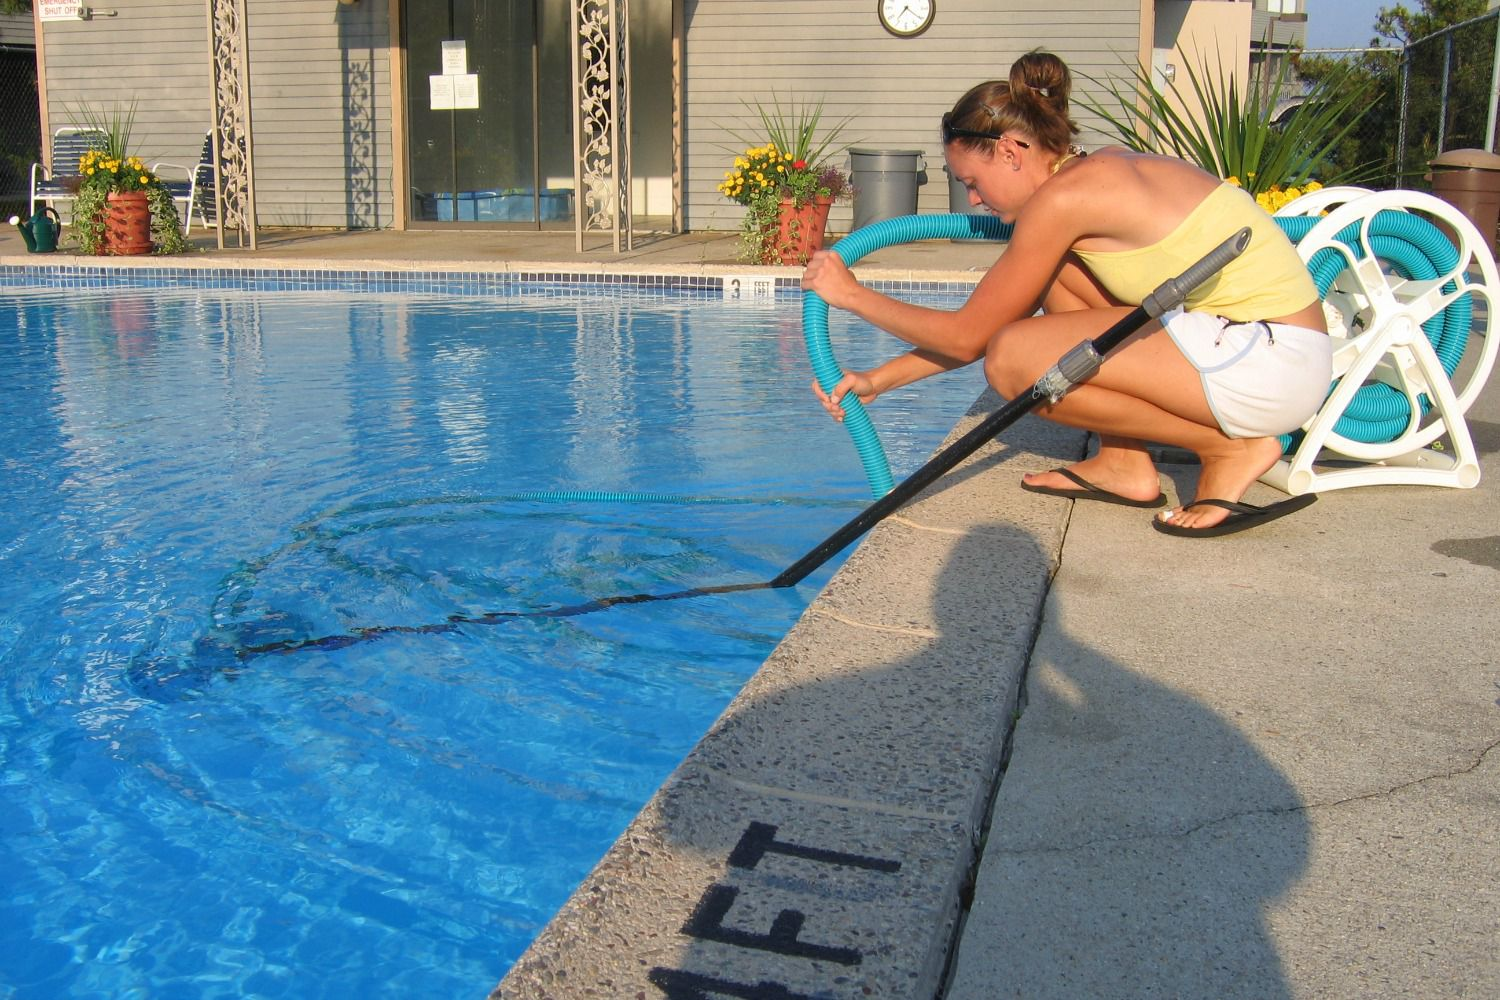 Diy swimming pool and spa cleaning and maintenance - Bobs swimming pool service and repair ...